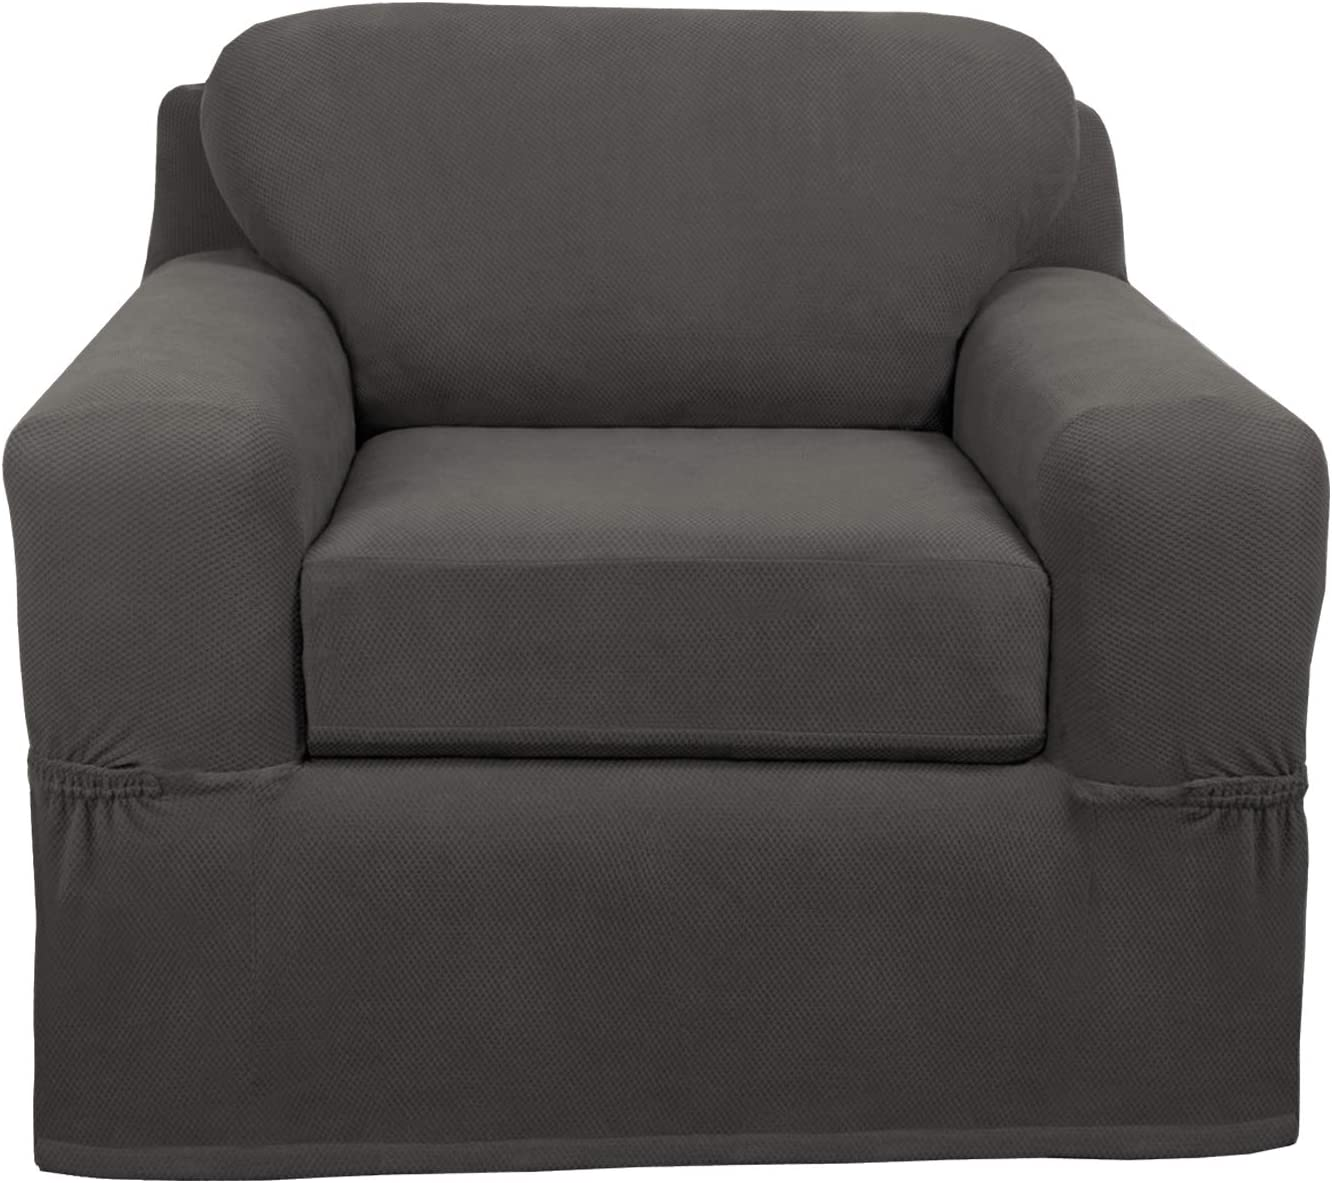 MAYTEX Pixel Ultra Soft Stretch 2 Piece Arm Furniture Cover, Charcoal Grey Chair Slipcover